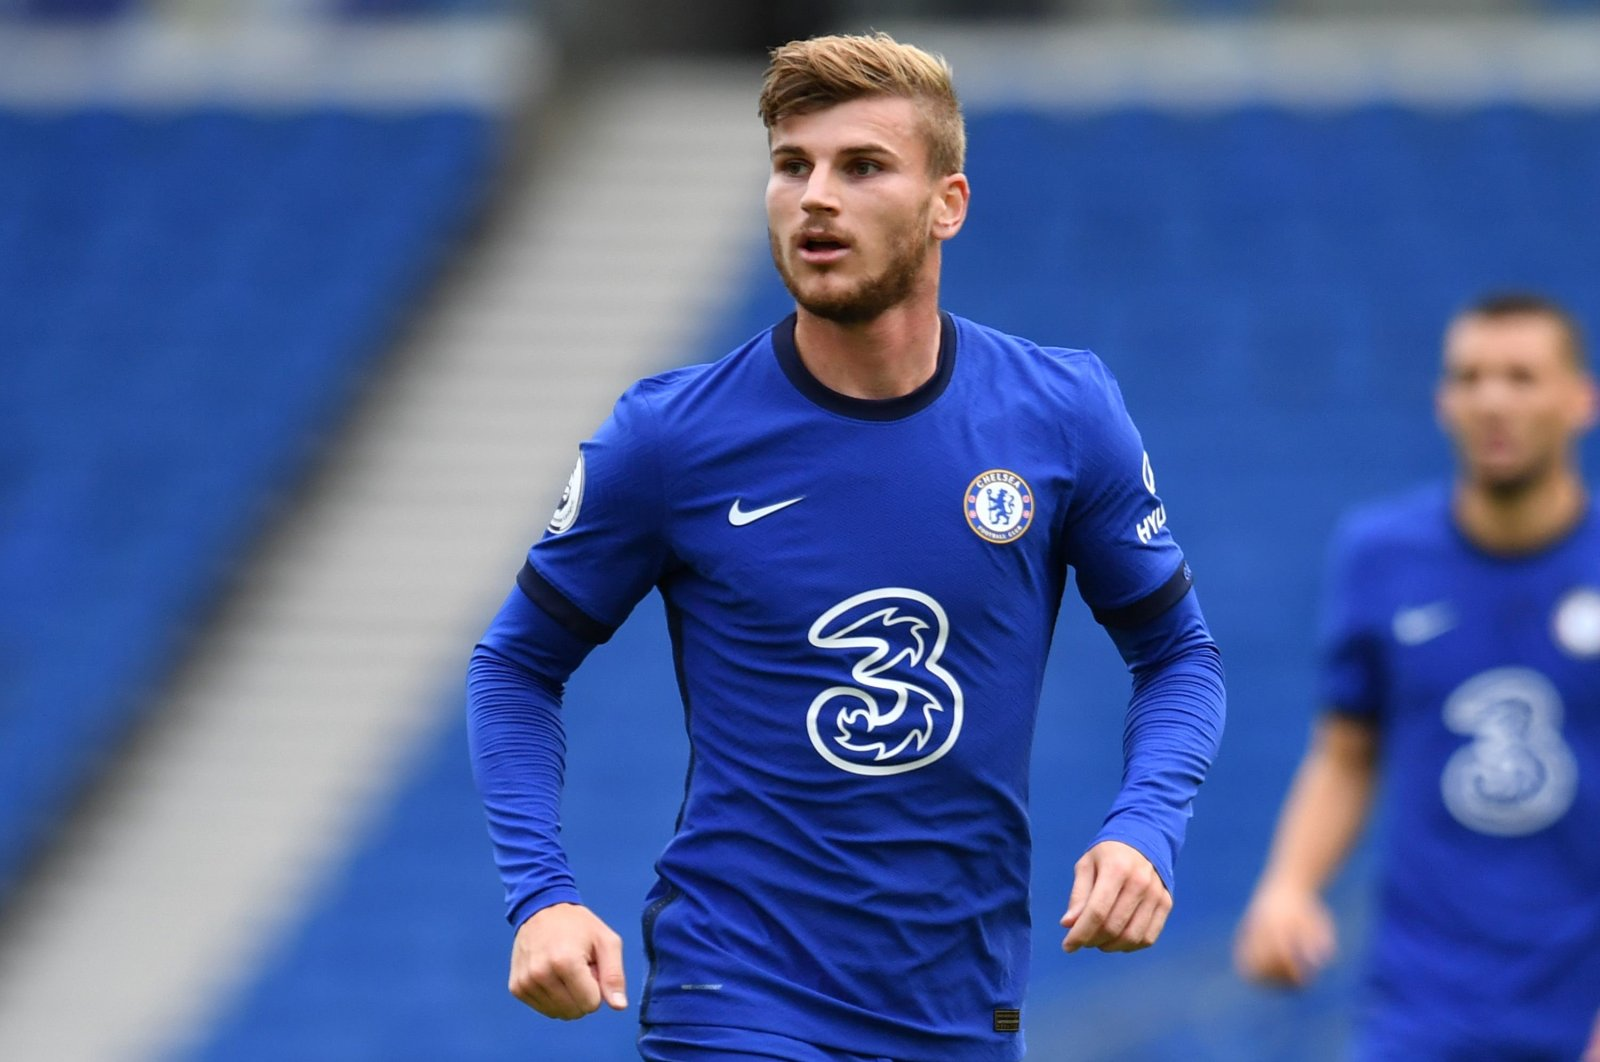 Chelsea's Timo Werner during a pre-season friendly match against Brighton and Hove Albion, in Brighton, England, Aug. 29, 2020. (AFP Photo)